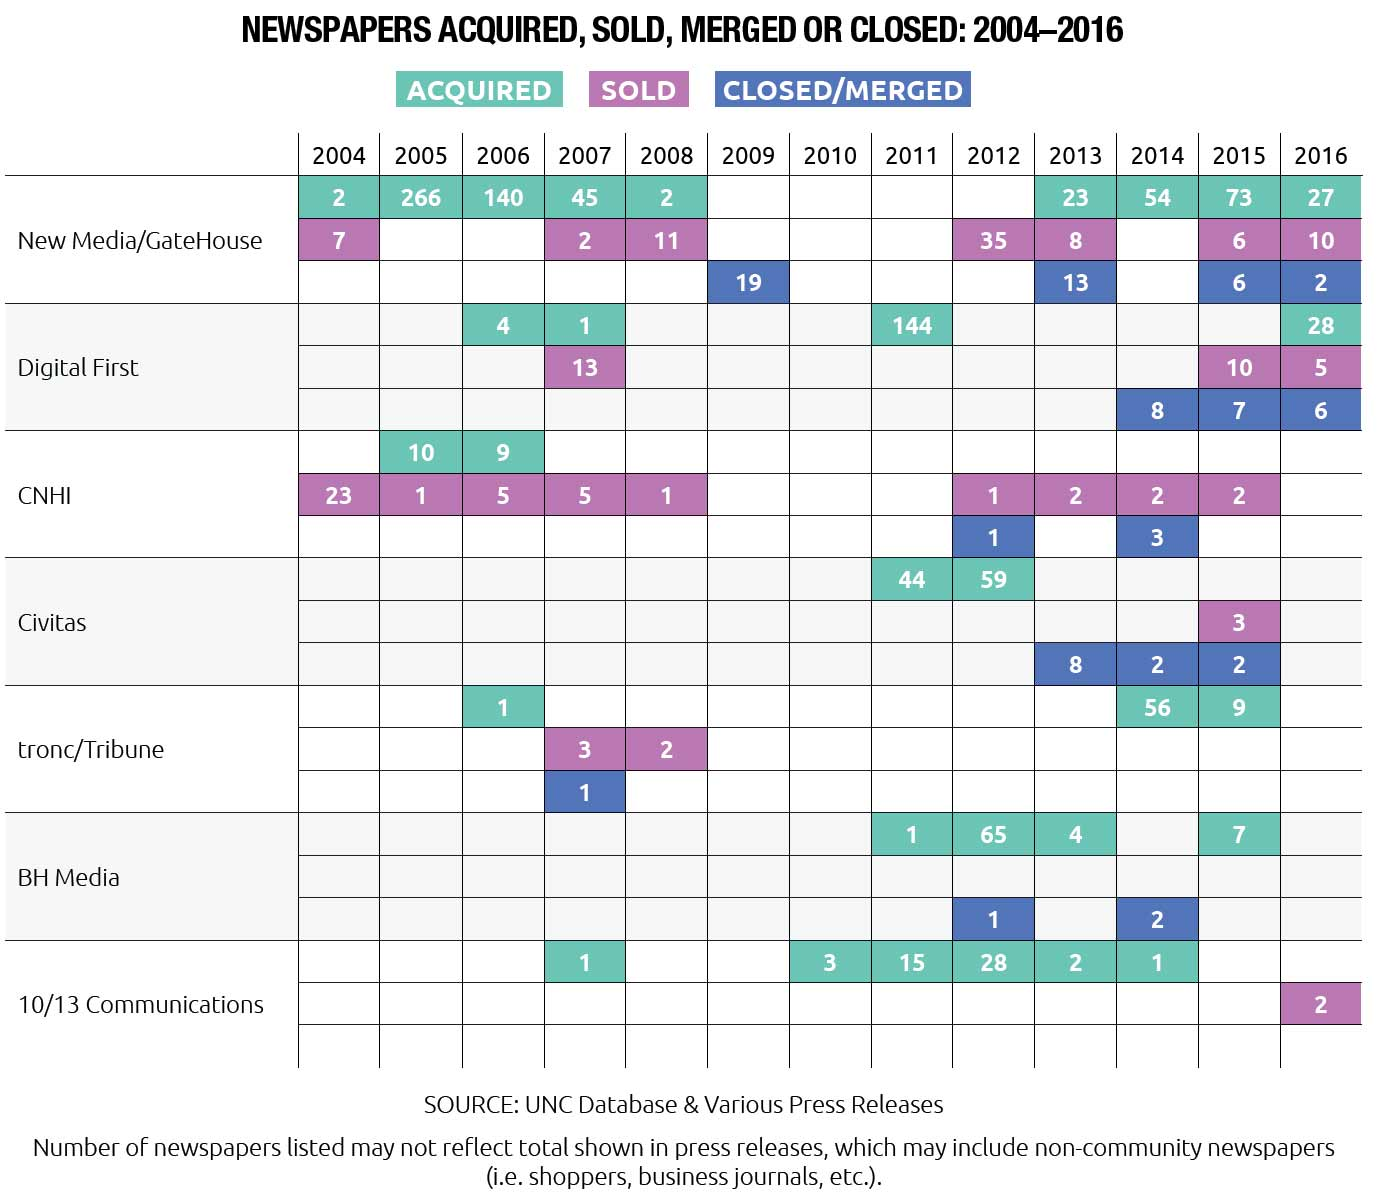 Newspapers Acquired, Sold, Merged or Closed: 2004-2016 (7 Largest Companies)